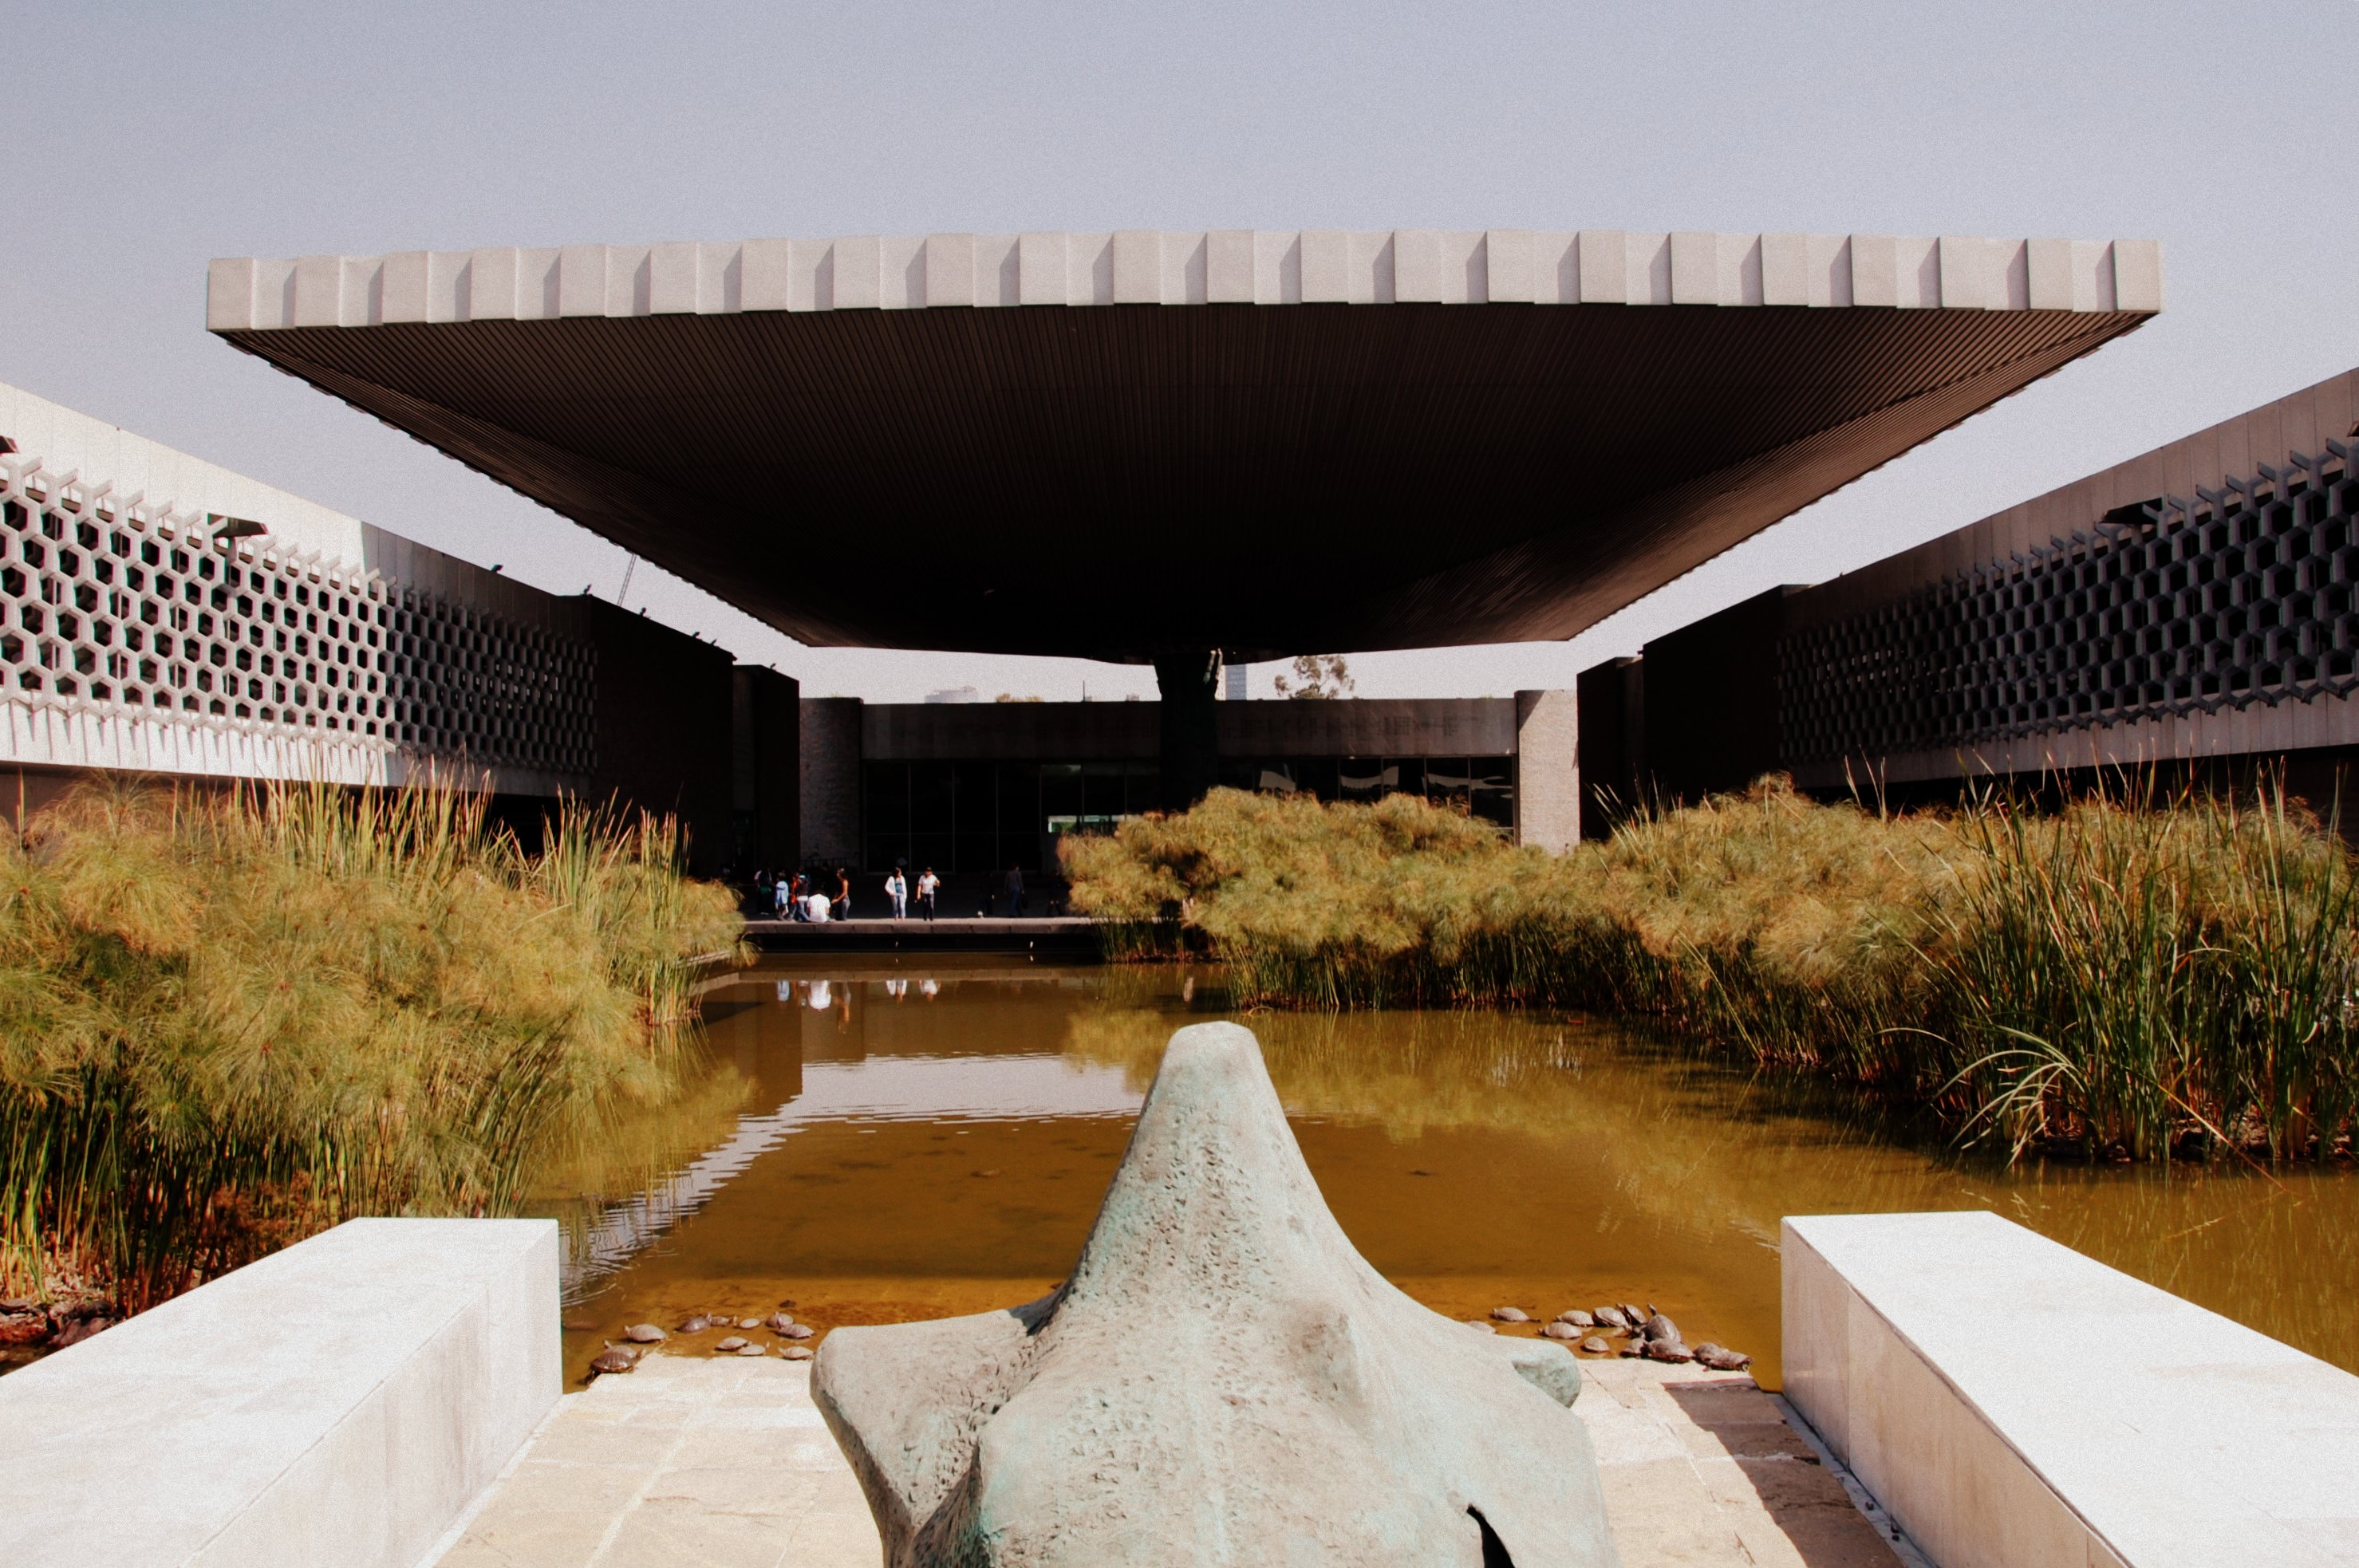 Museo Nacional de Antropología, showing the scale of El Paraguas | © LWYang/Flickr